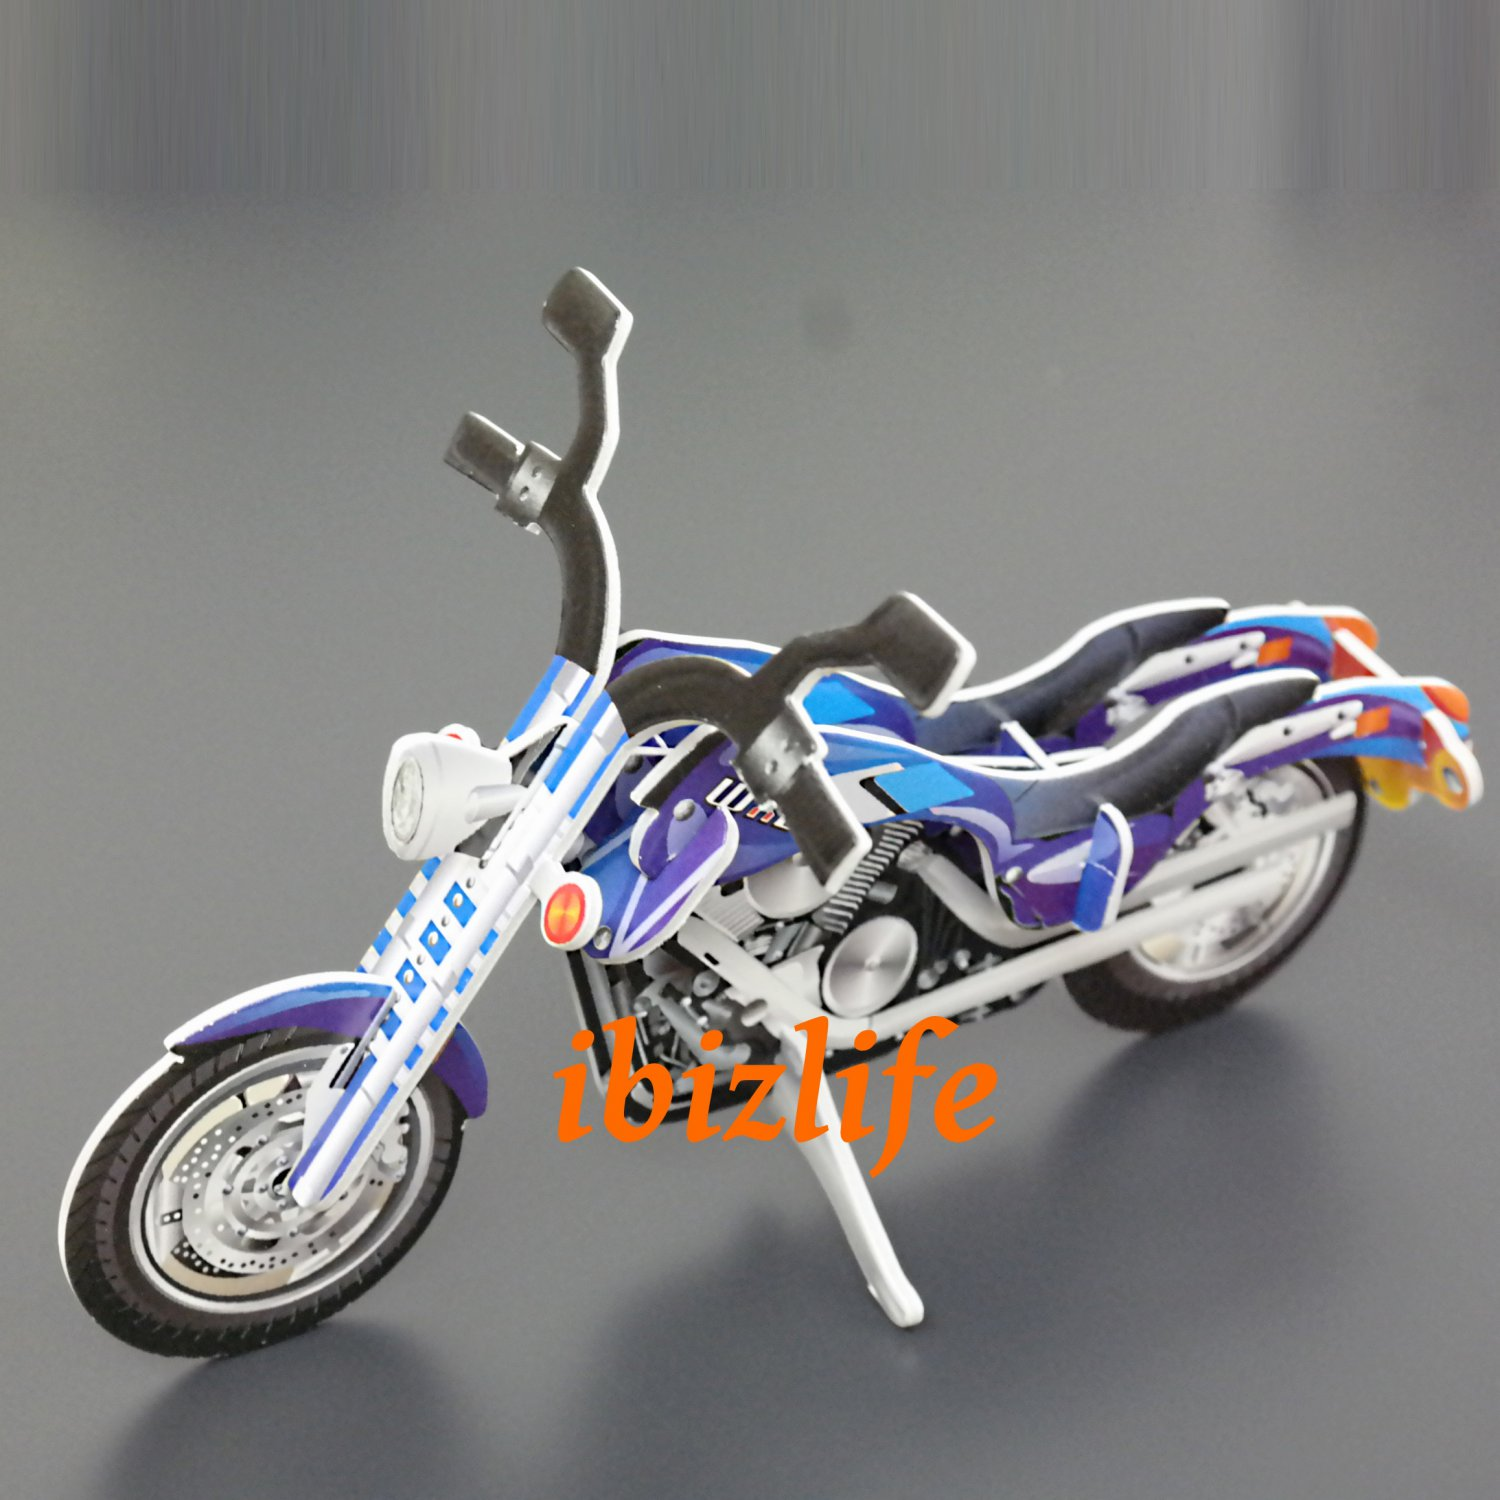 PAPER 3D puzzle DIY jigsaw craft model Bikes (2 per pack)  as gift  - Blue MOTO